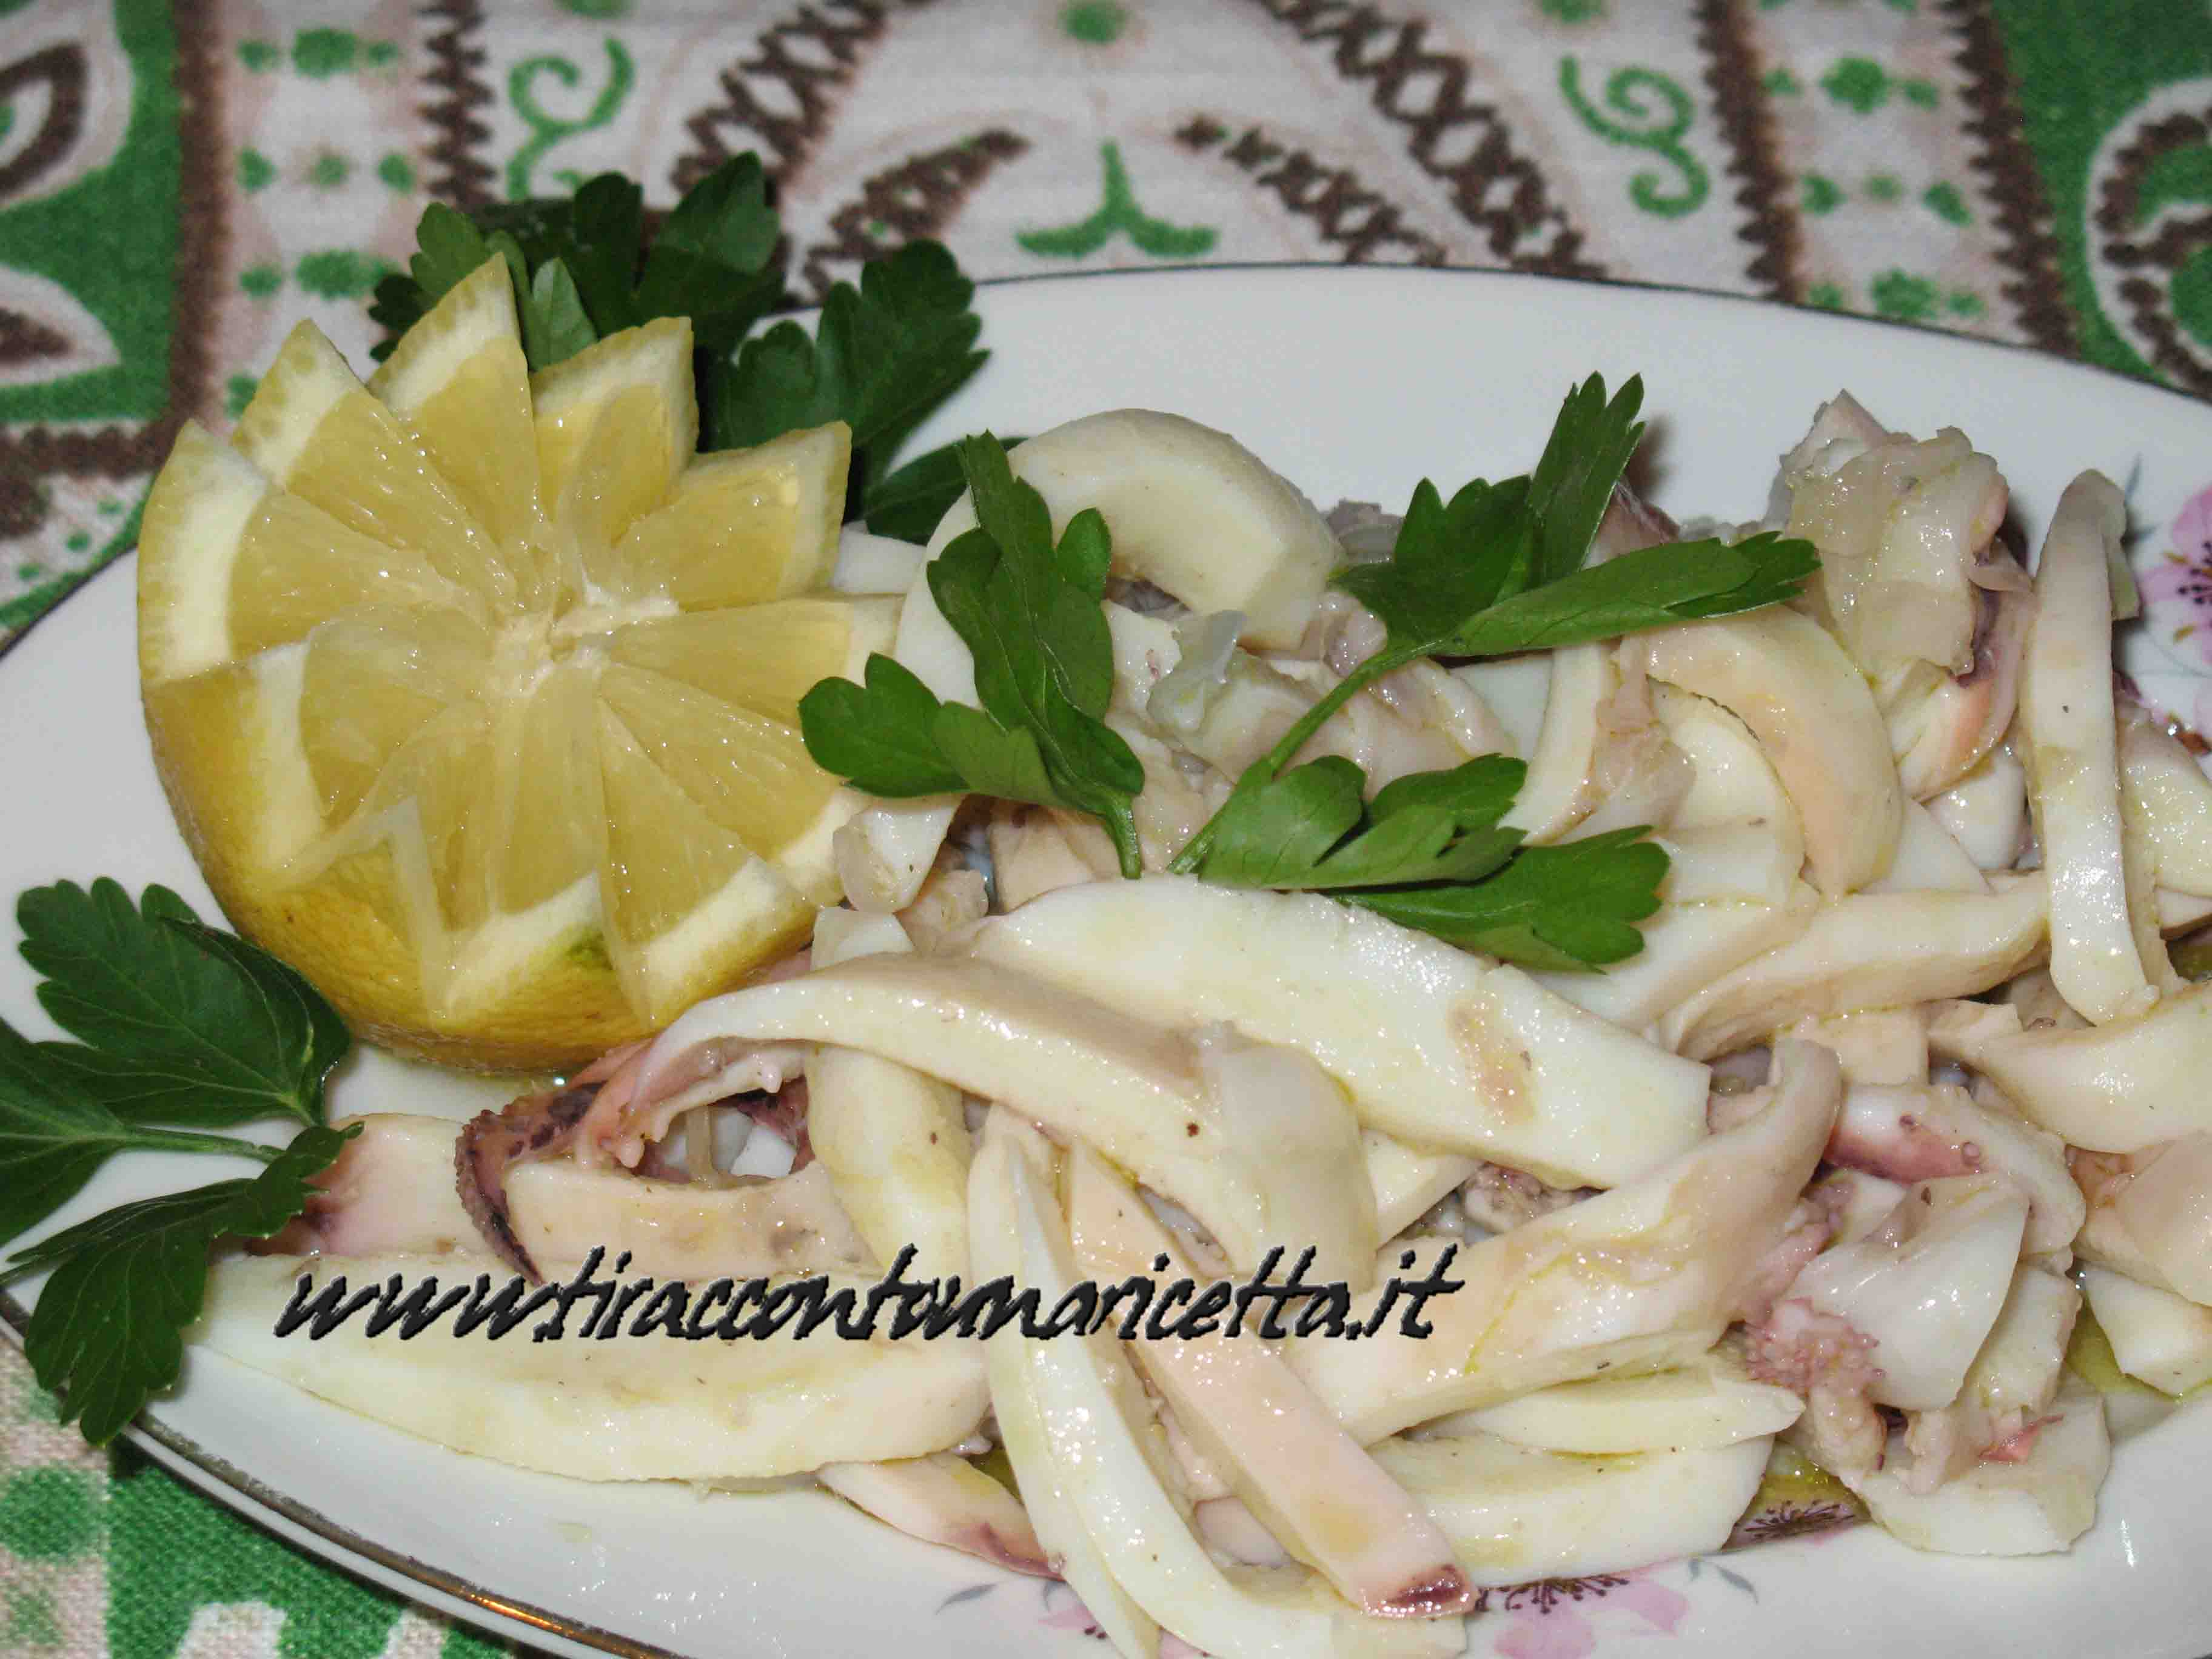 Cuttlefish salad with olive oil and lemon